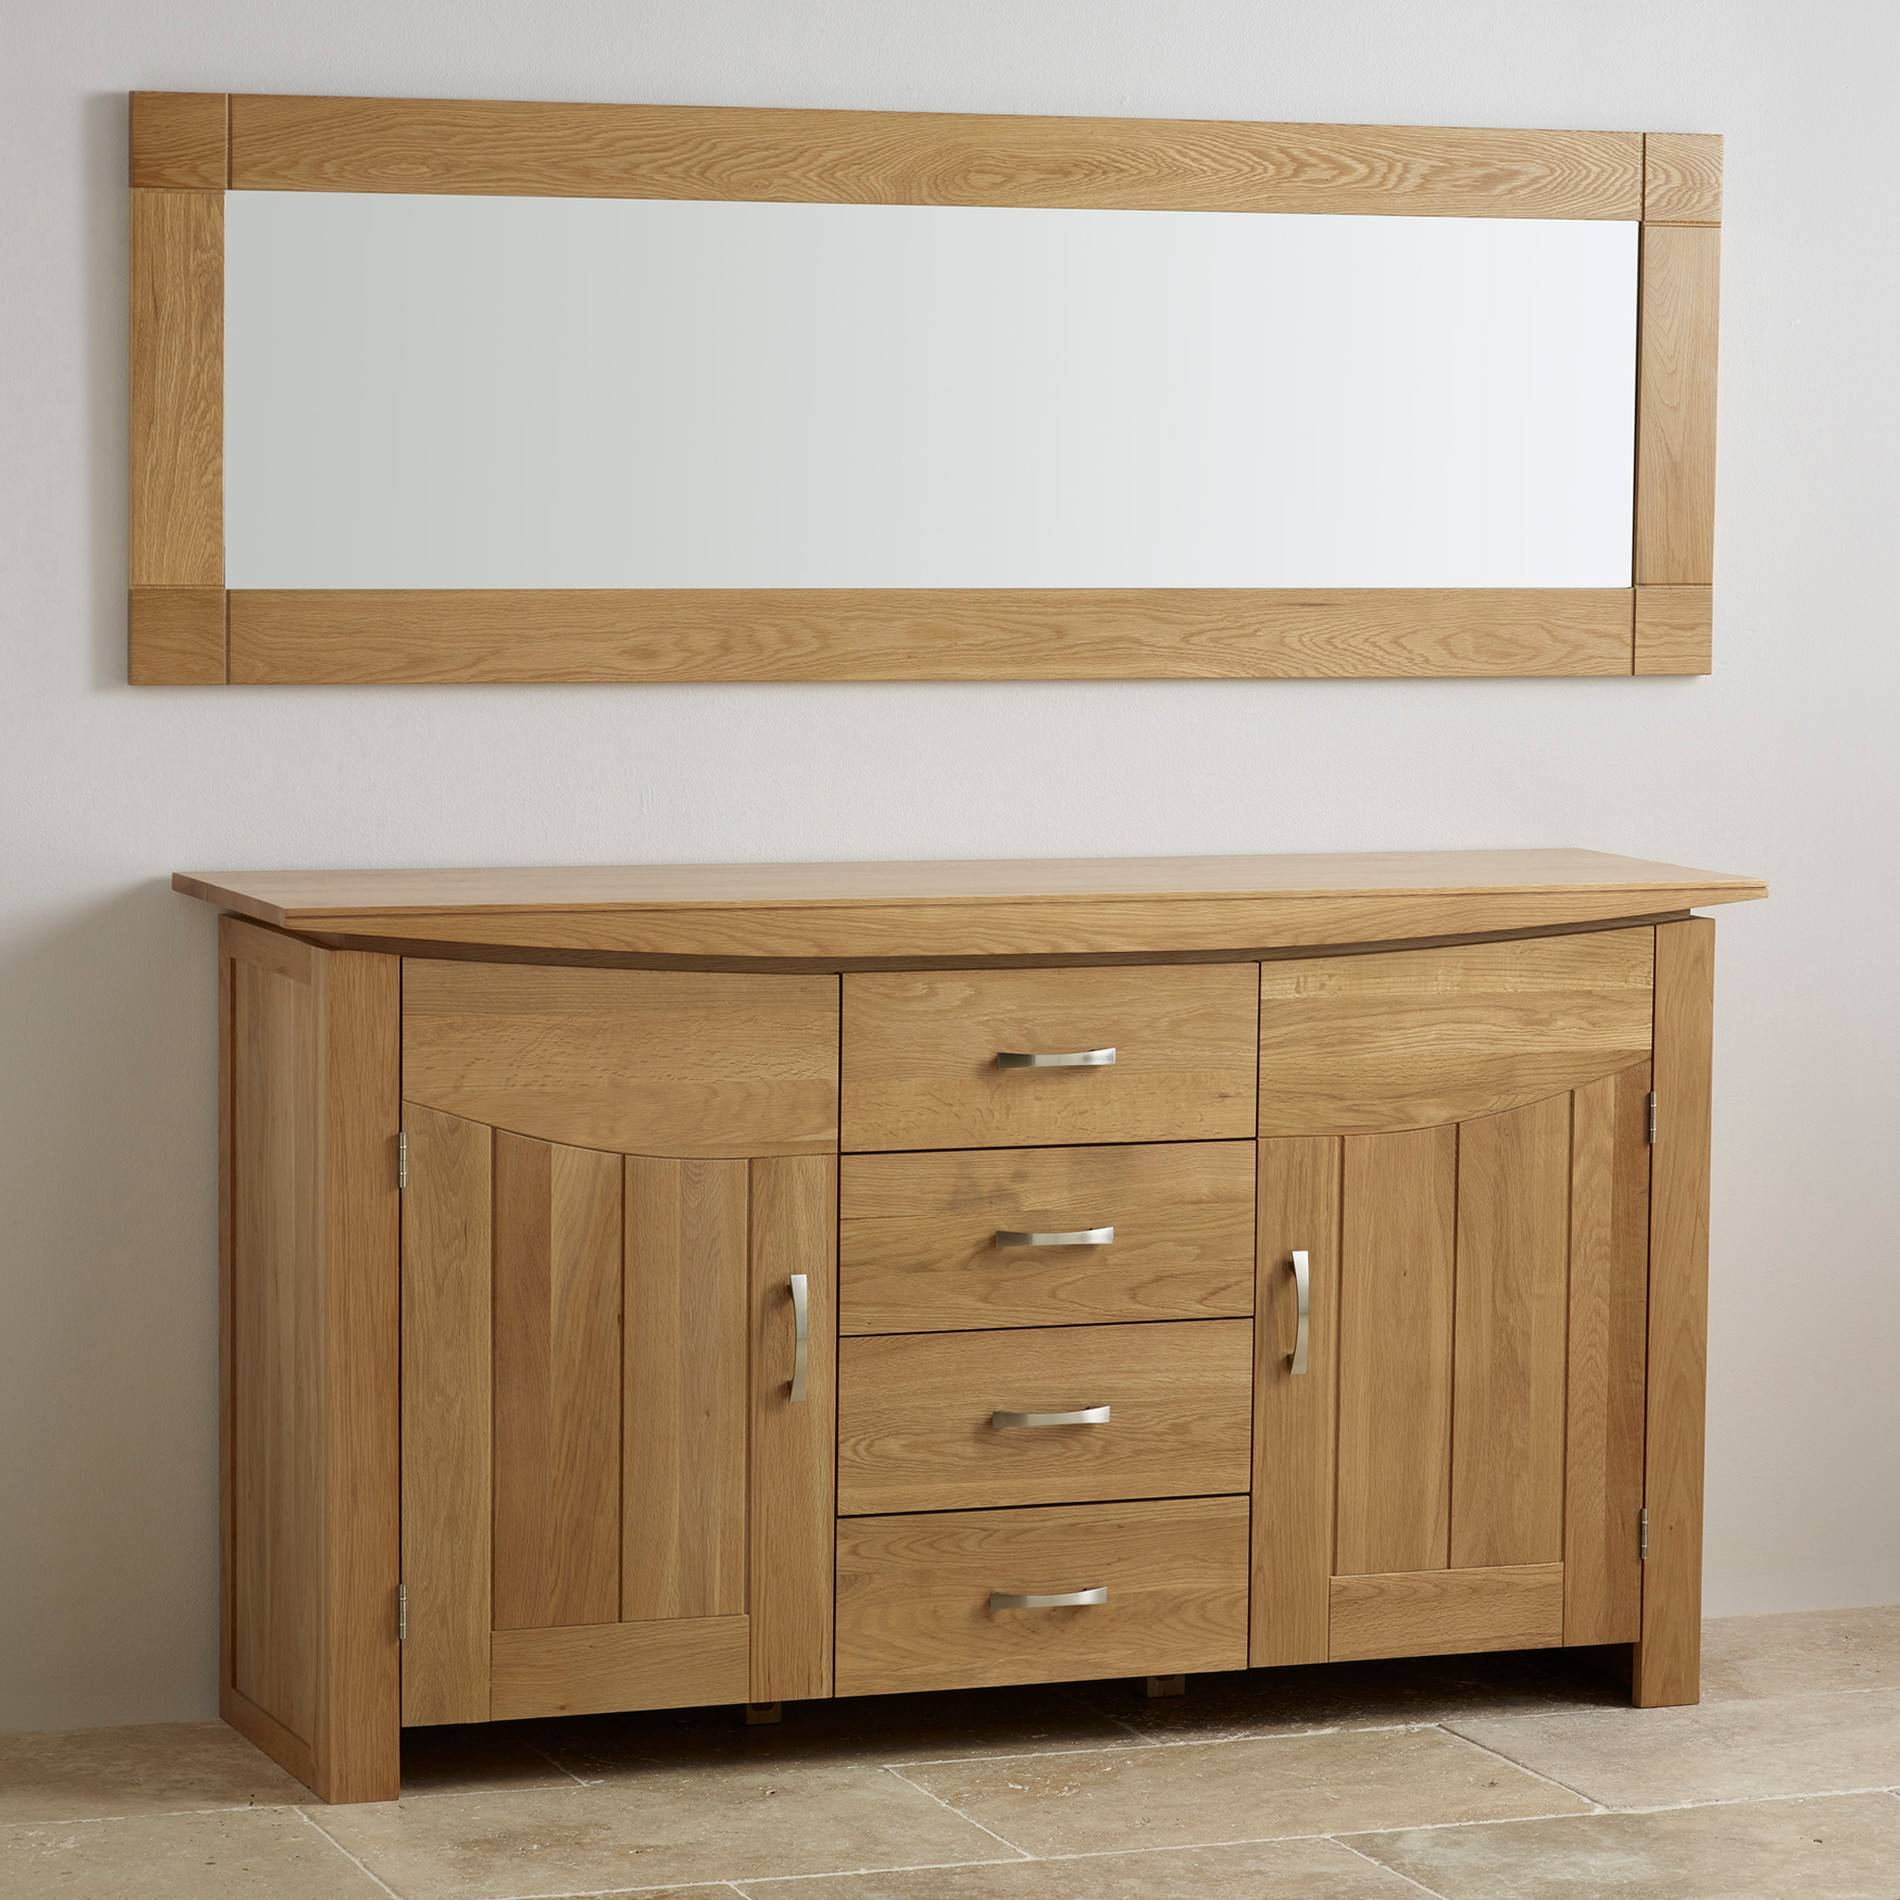 Contemporary Natural Solid Oak Wall Mirror – 1800mm X 600mm With Regard To Most Popular Oak Furniture Land Sideboards (View 5 of 15)